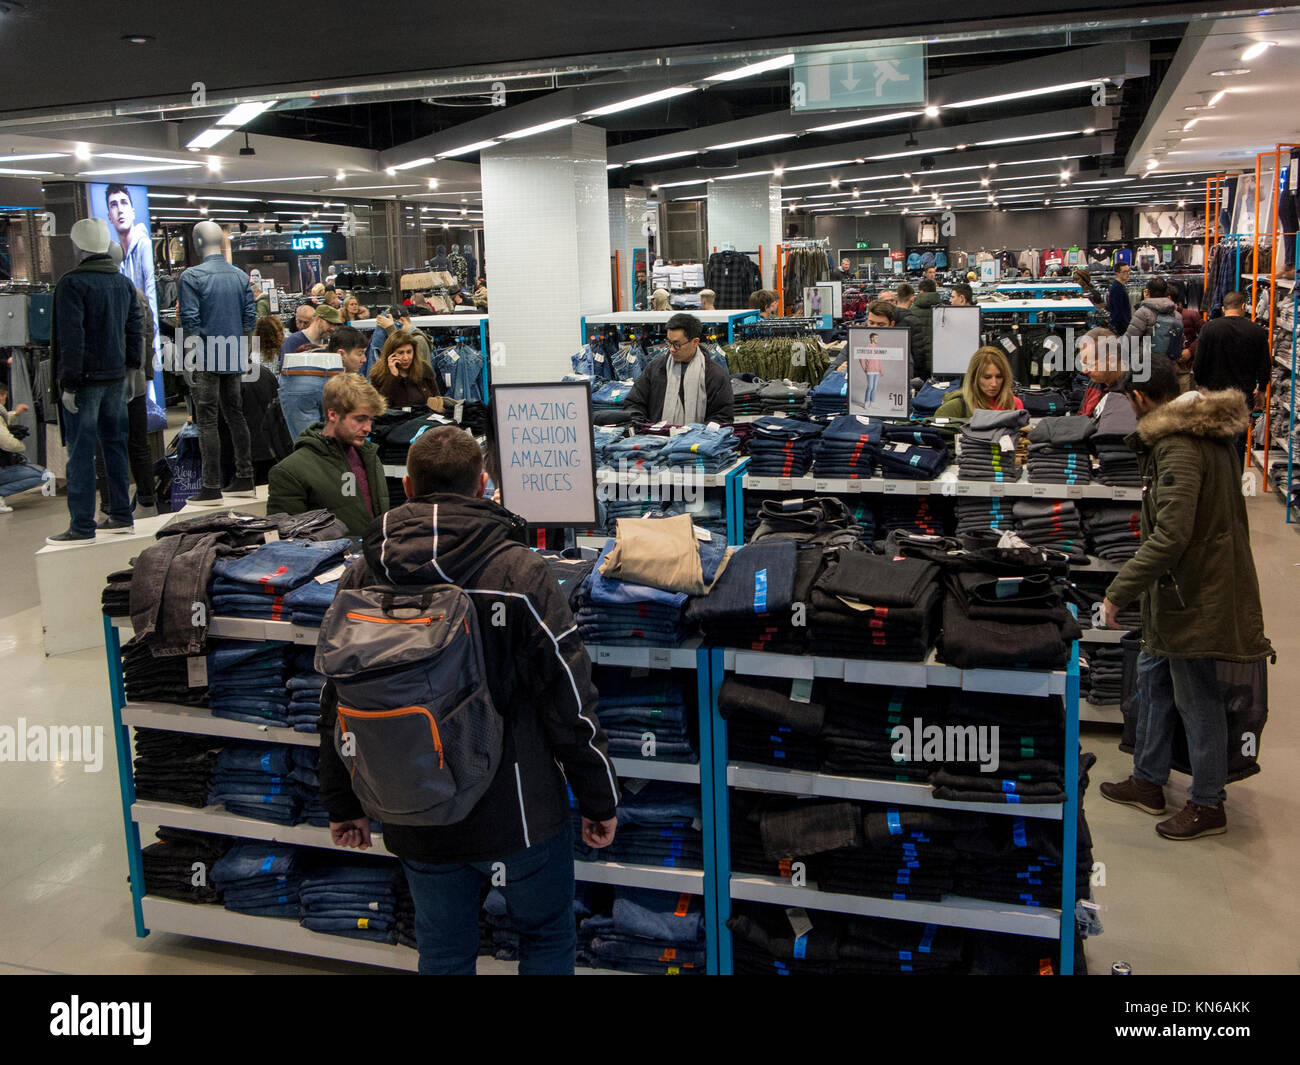 The interior of Primark in Oxford Street, London - Stock Image